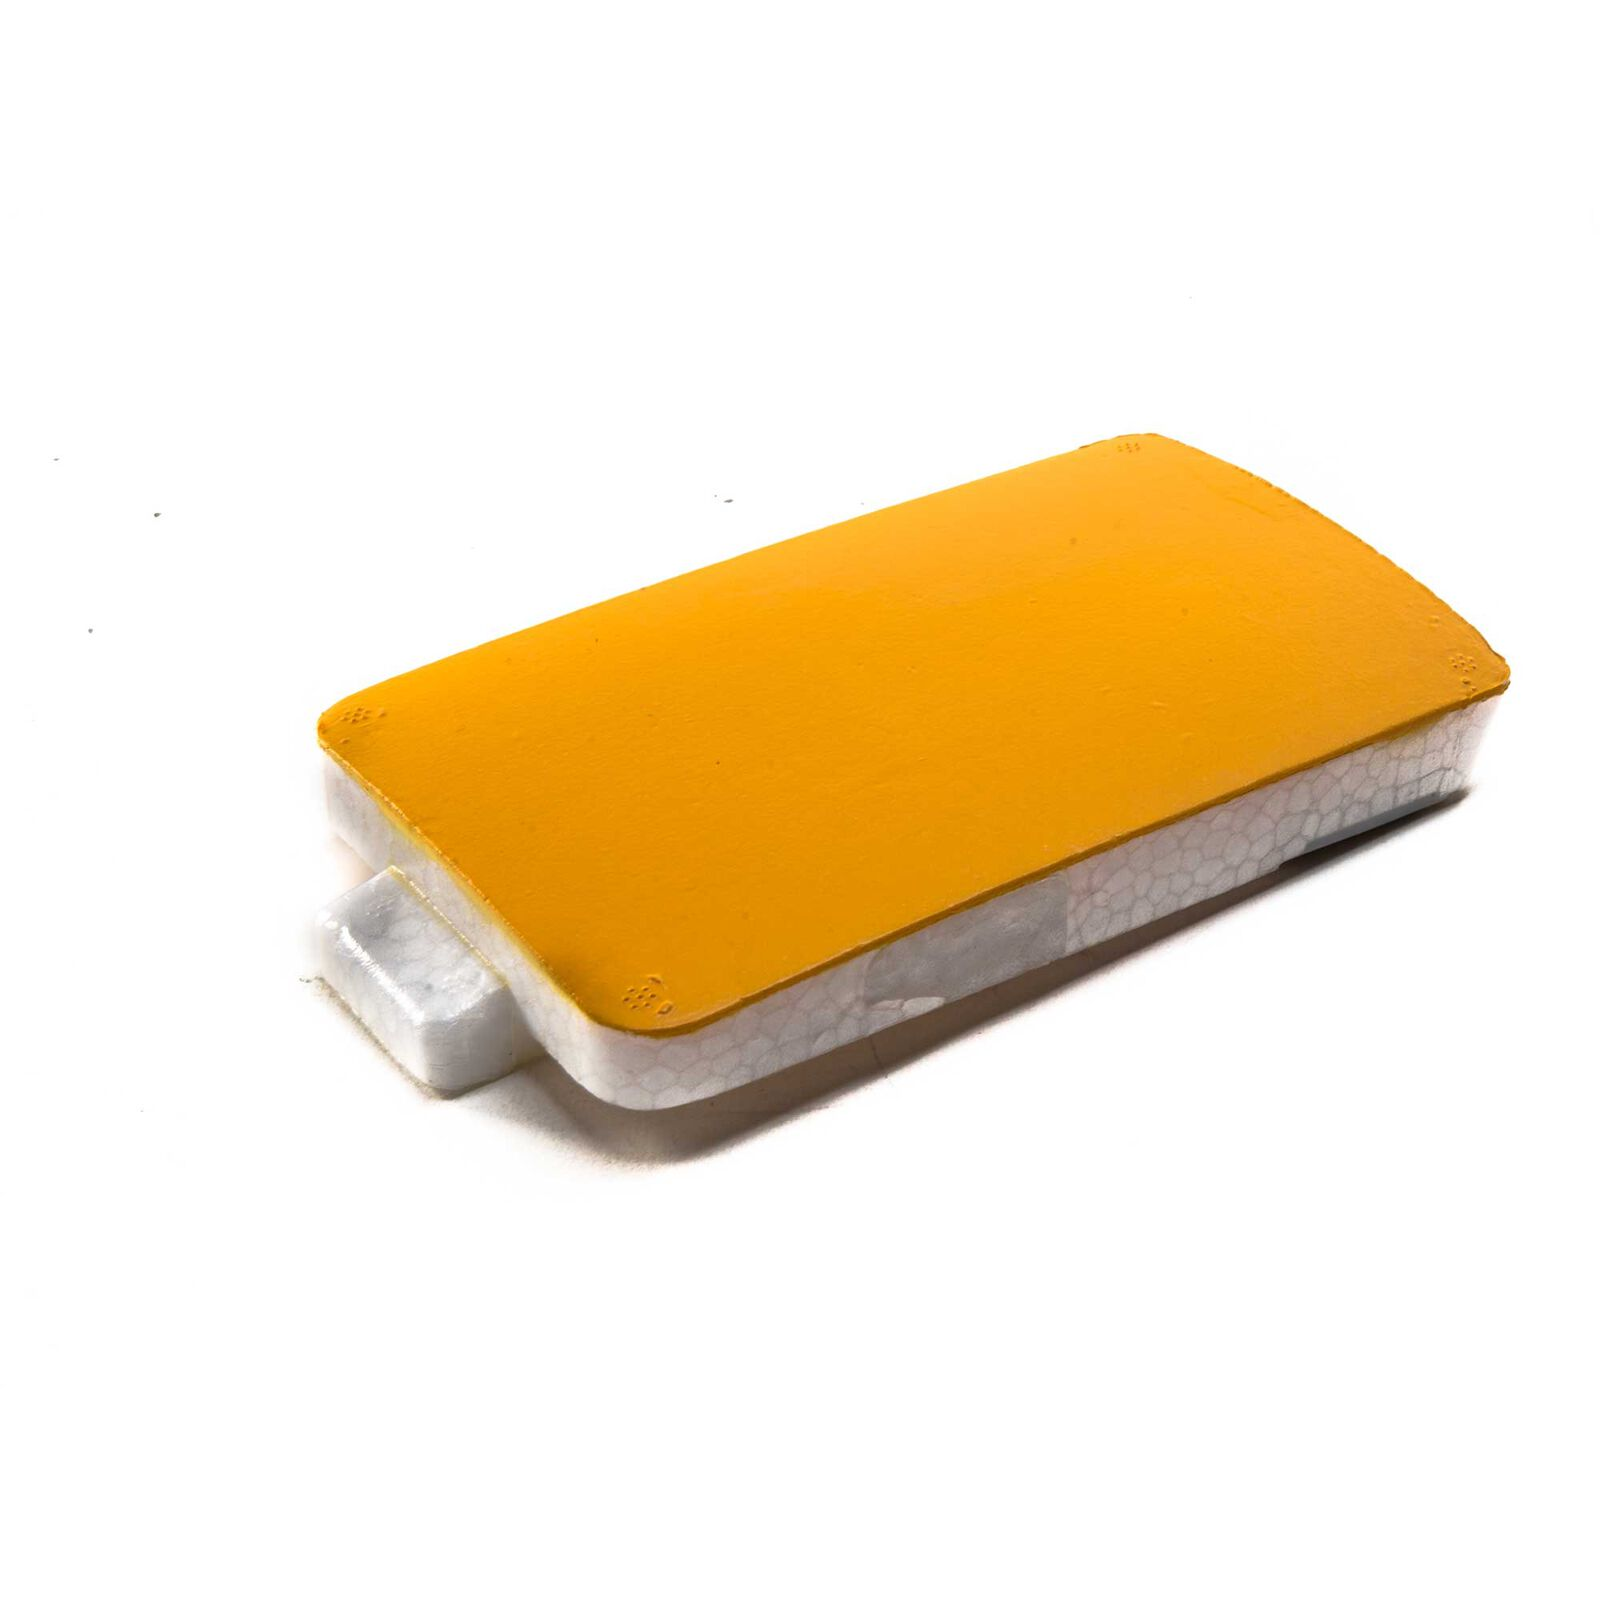 Battery Cover: Extra 300 1.3m